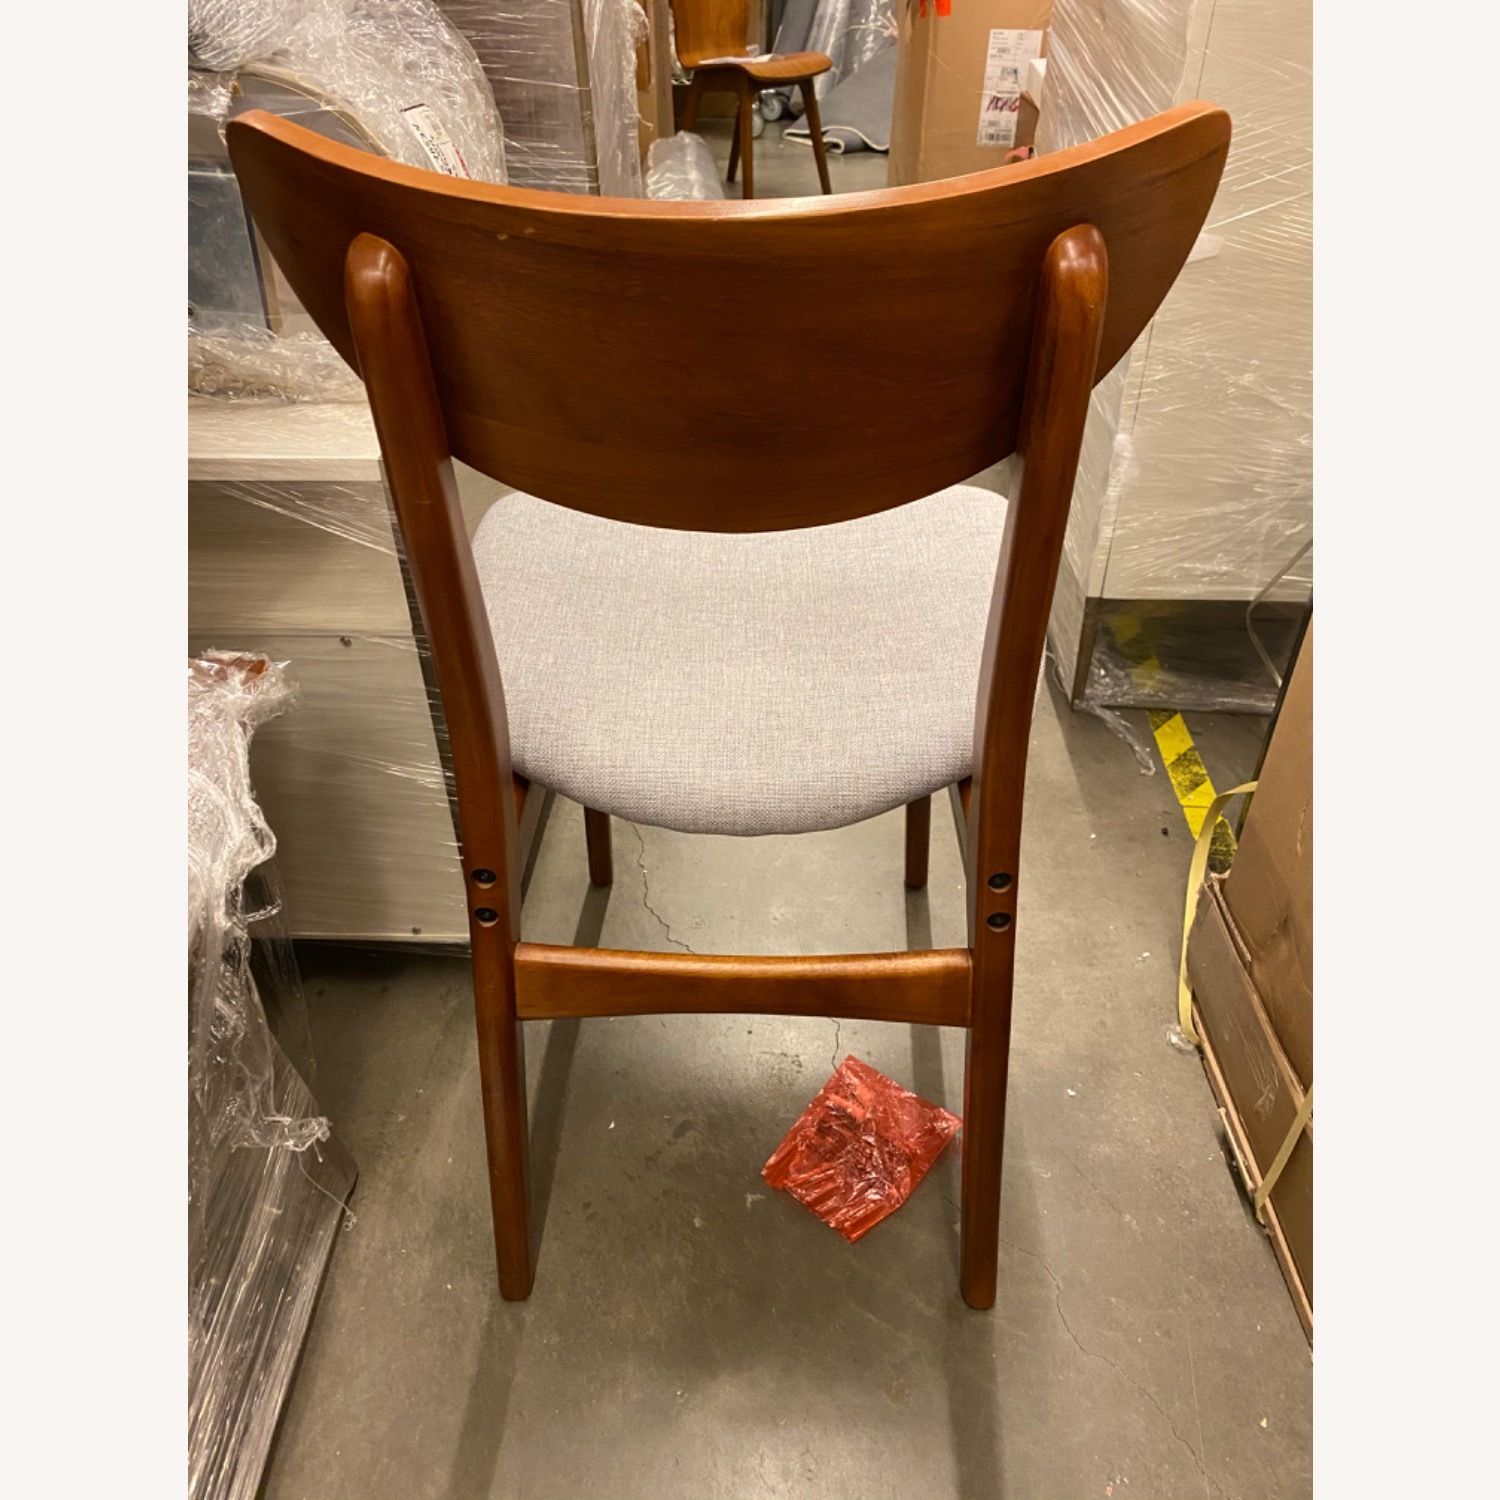 West Elm Classic Cafe Upholstered Dining Chair - image-15